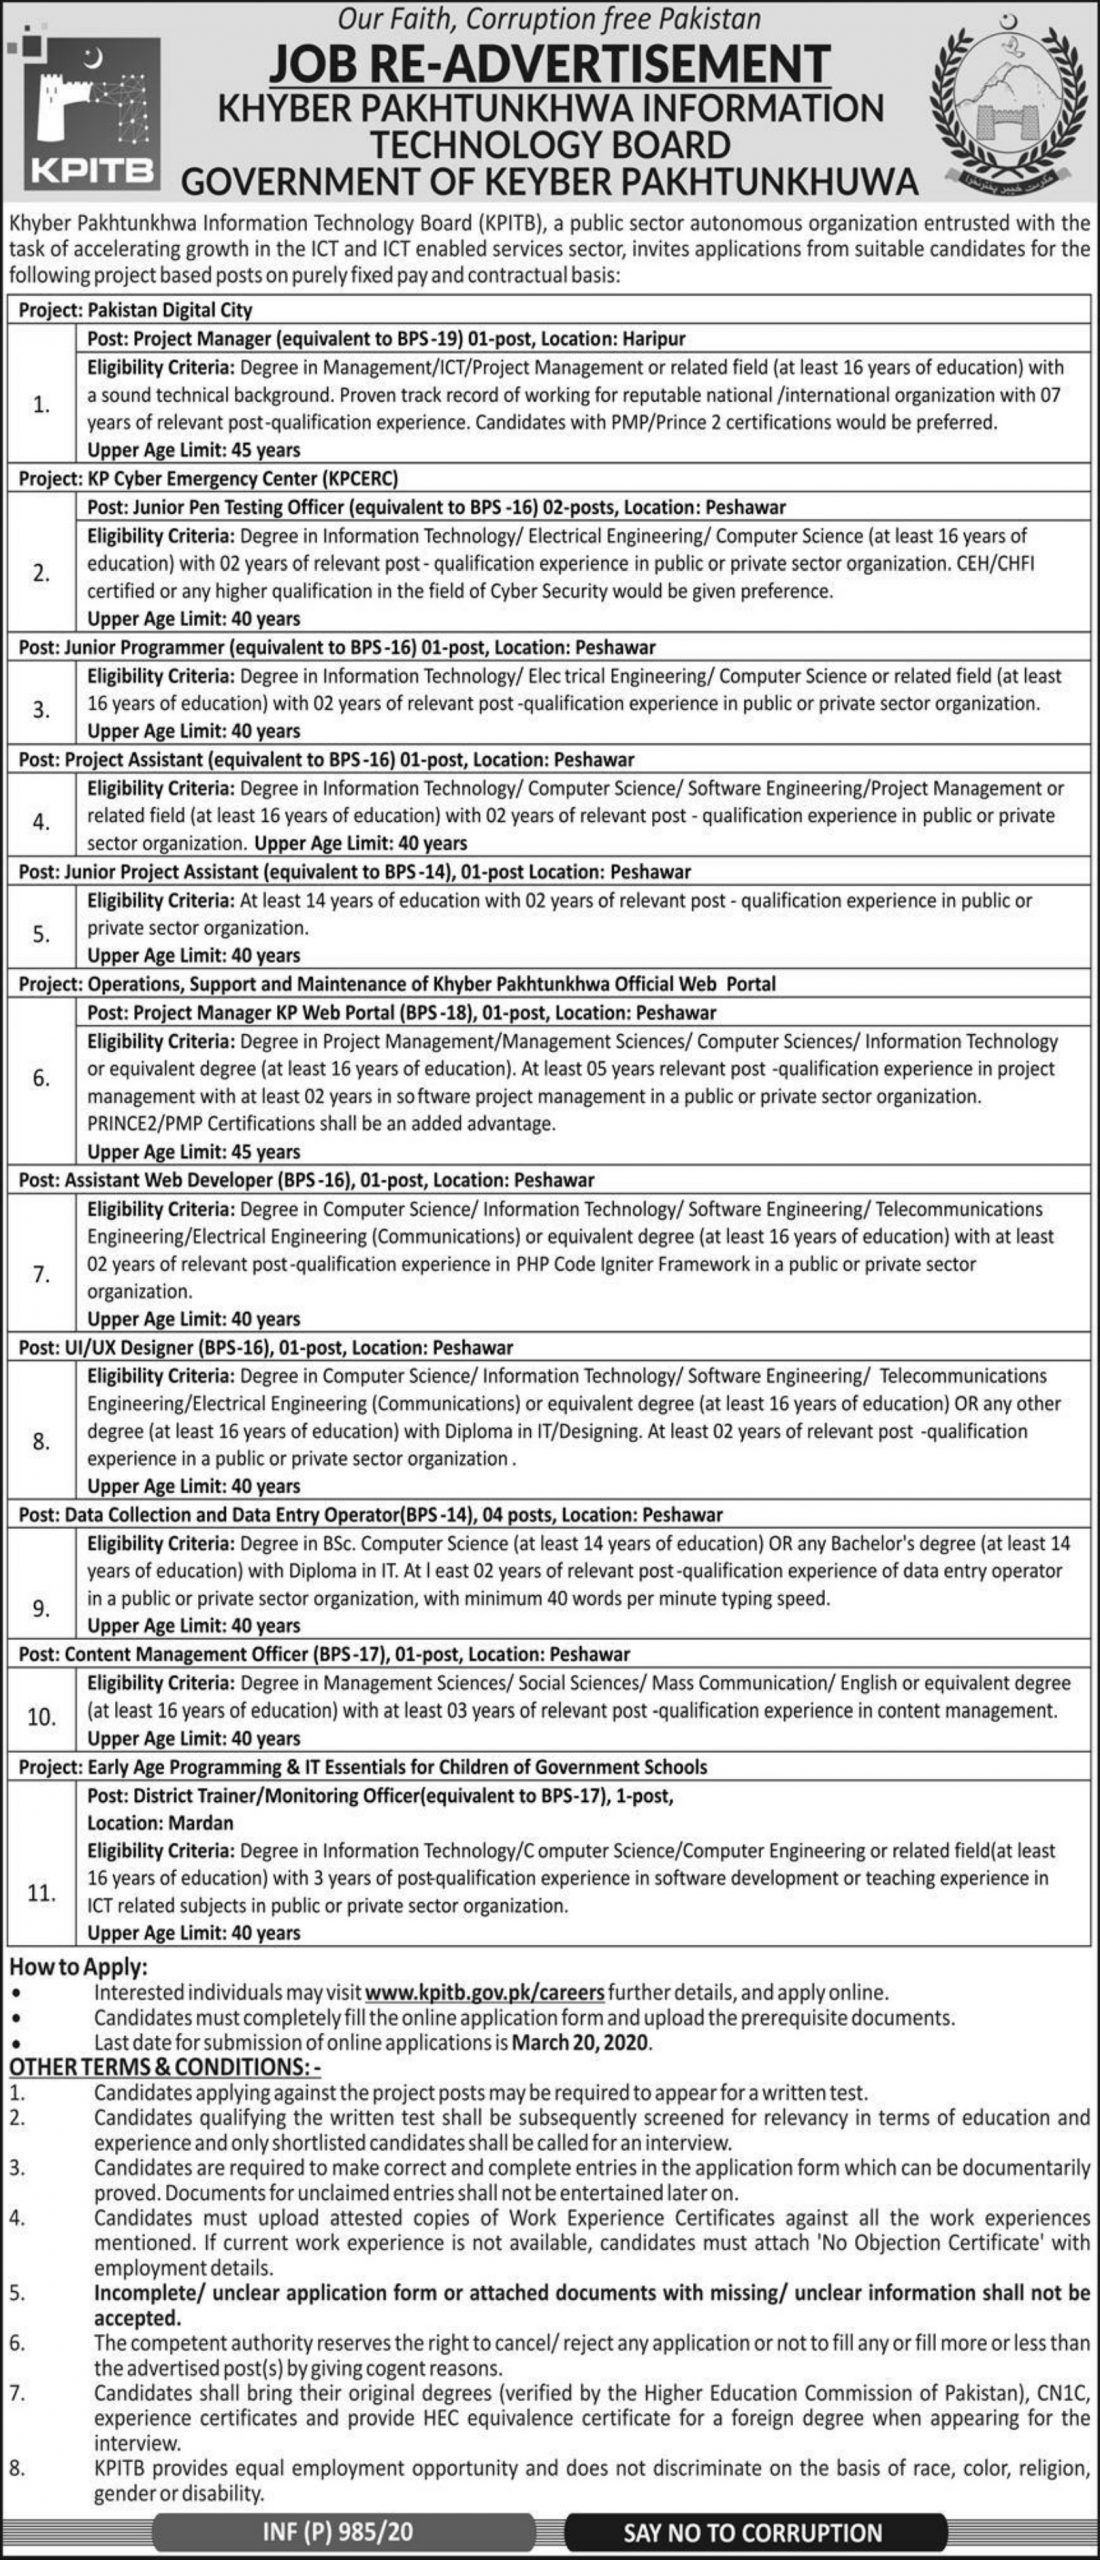 KPITB Jobs 2020 Khyber Pakhtunkhwa Information Technology Board